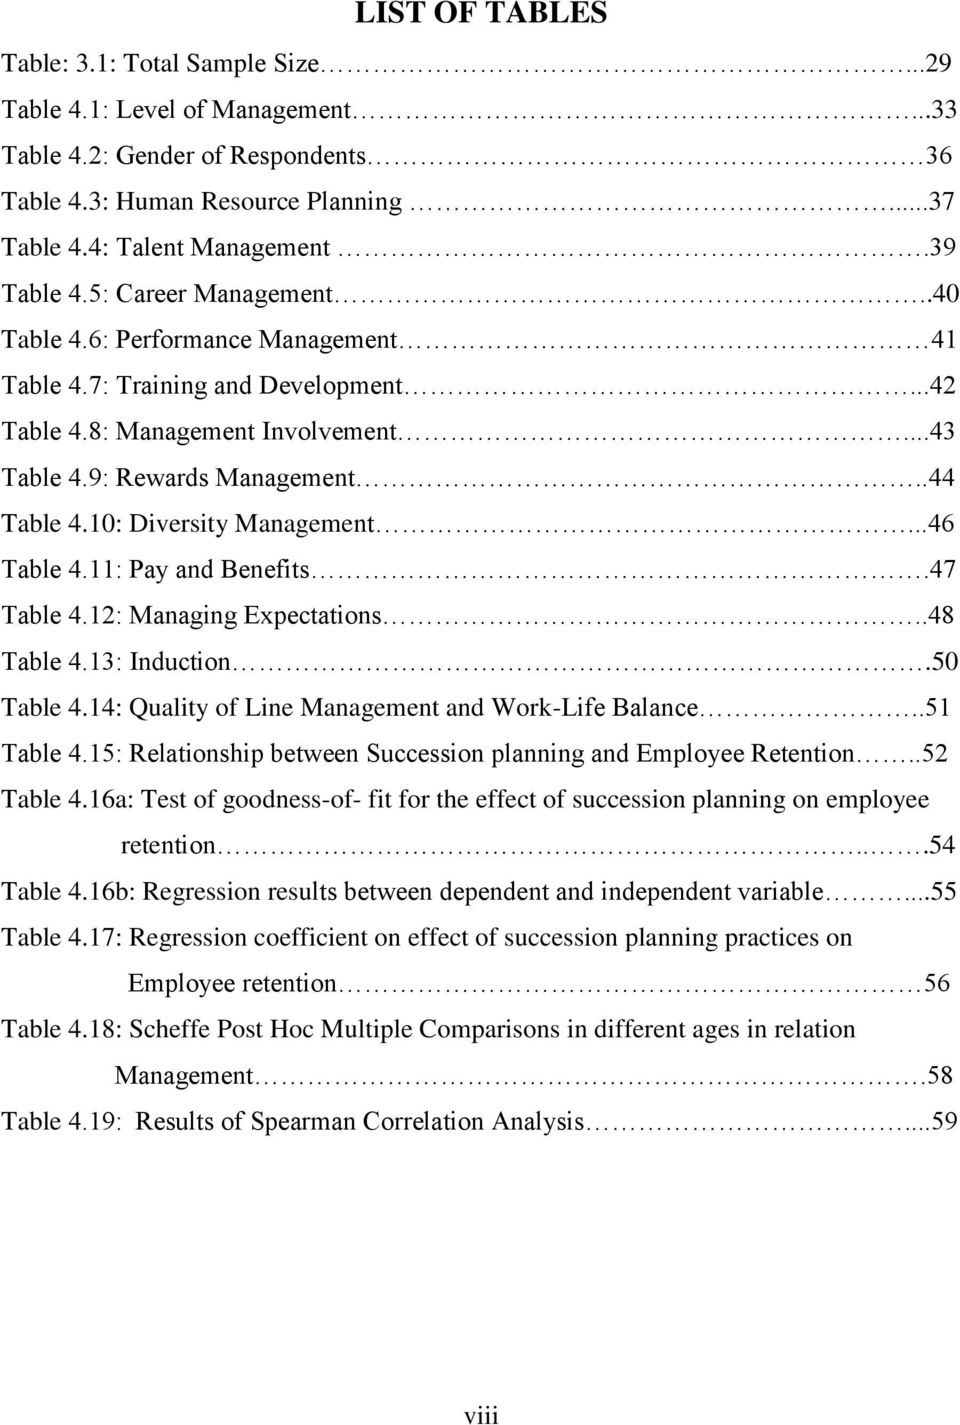 10: Diversity Management...46 Table 4.11: Pay and Benefits.47 Table 4.12: Managing Expectations..48 Table 4.13: Induction.50 Table 4.14: Quality of Line Management and Work-Life Balance..51 Table 4.